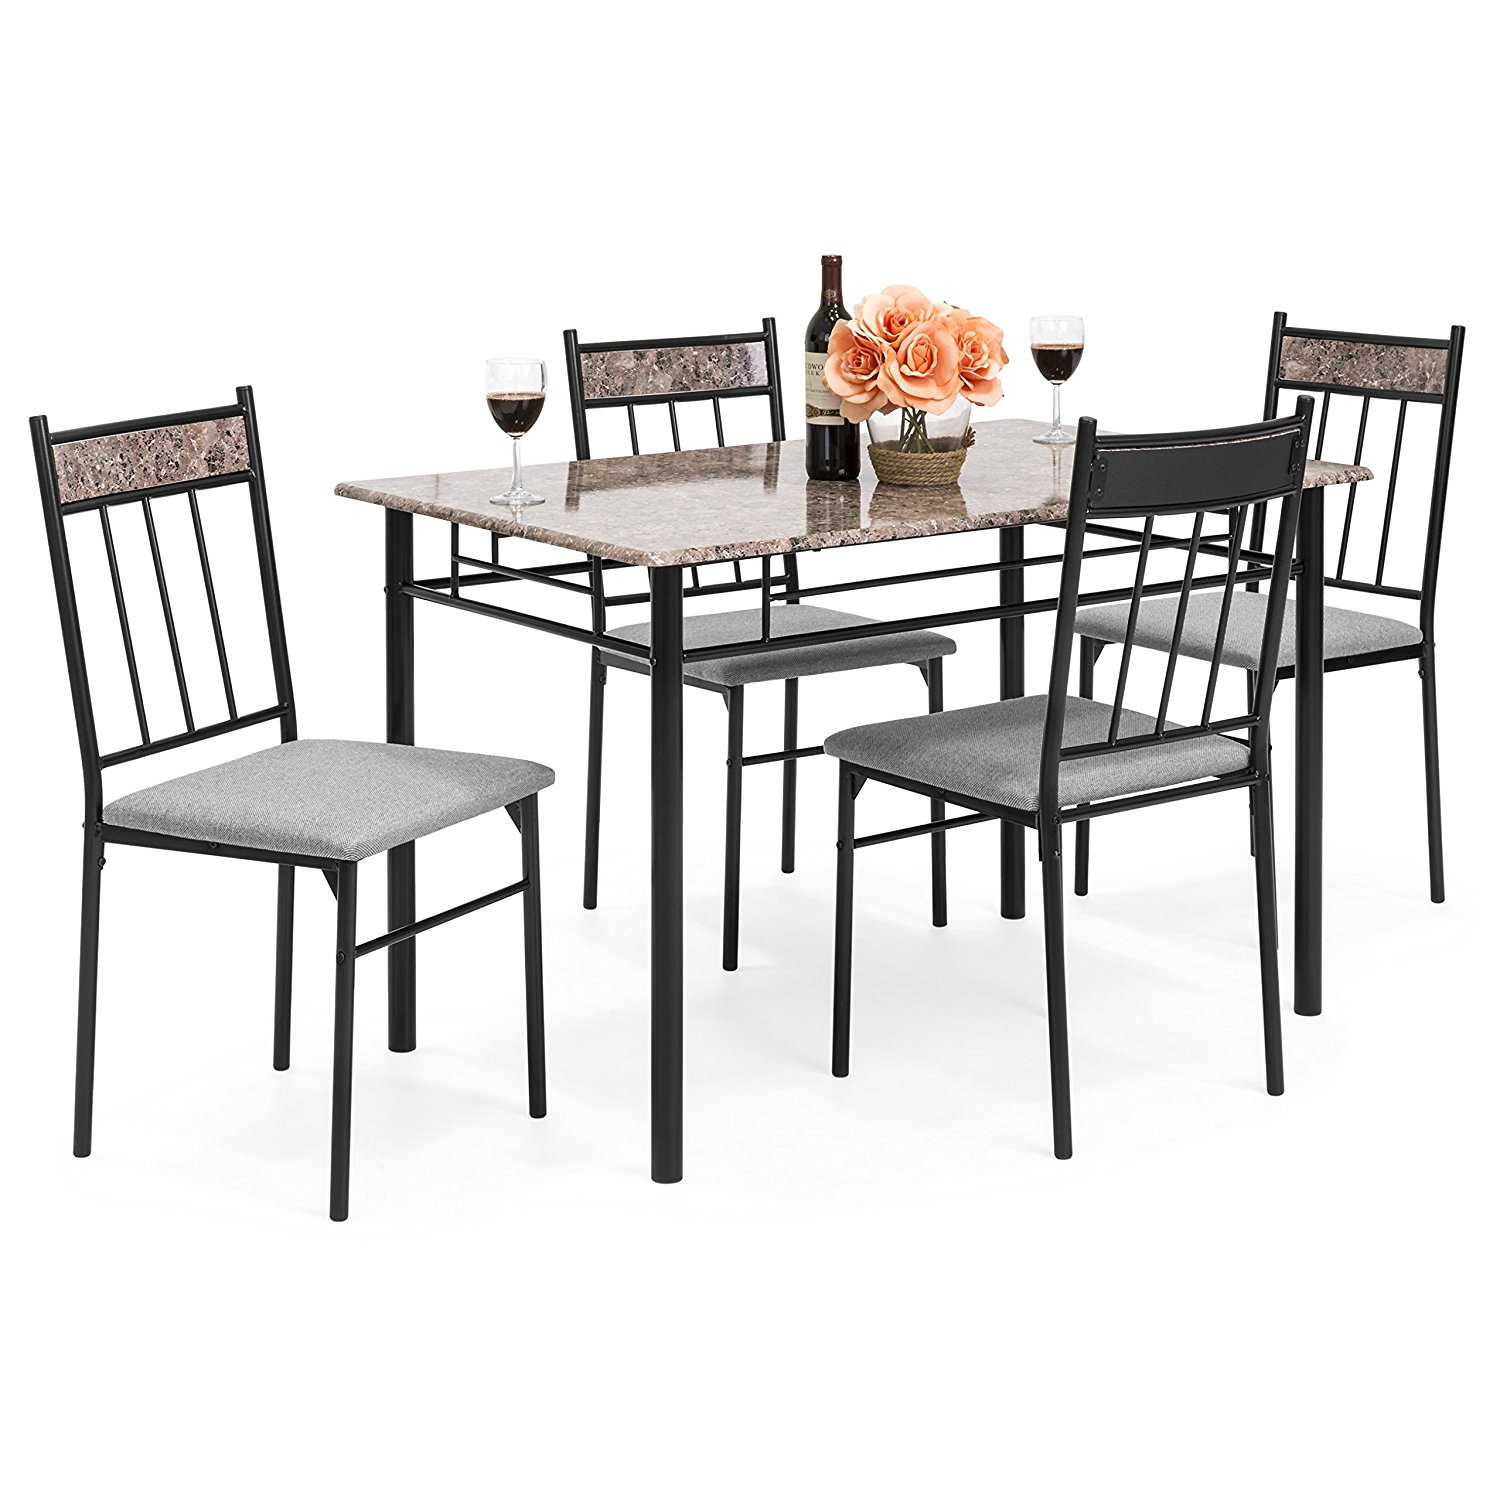 Balboa Counter Height Table Stool 3 Piece Dining Set: Coral 5-Piece Rectangle Faux Marble Dining Table Set W